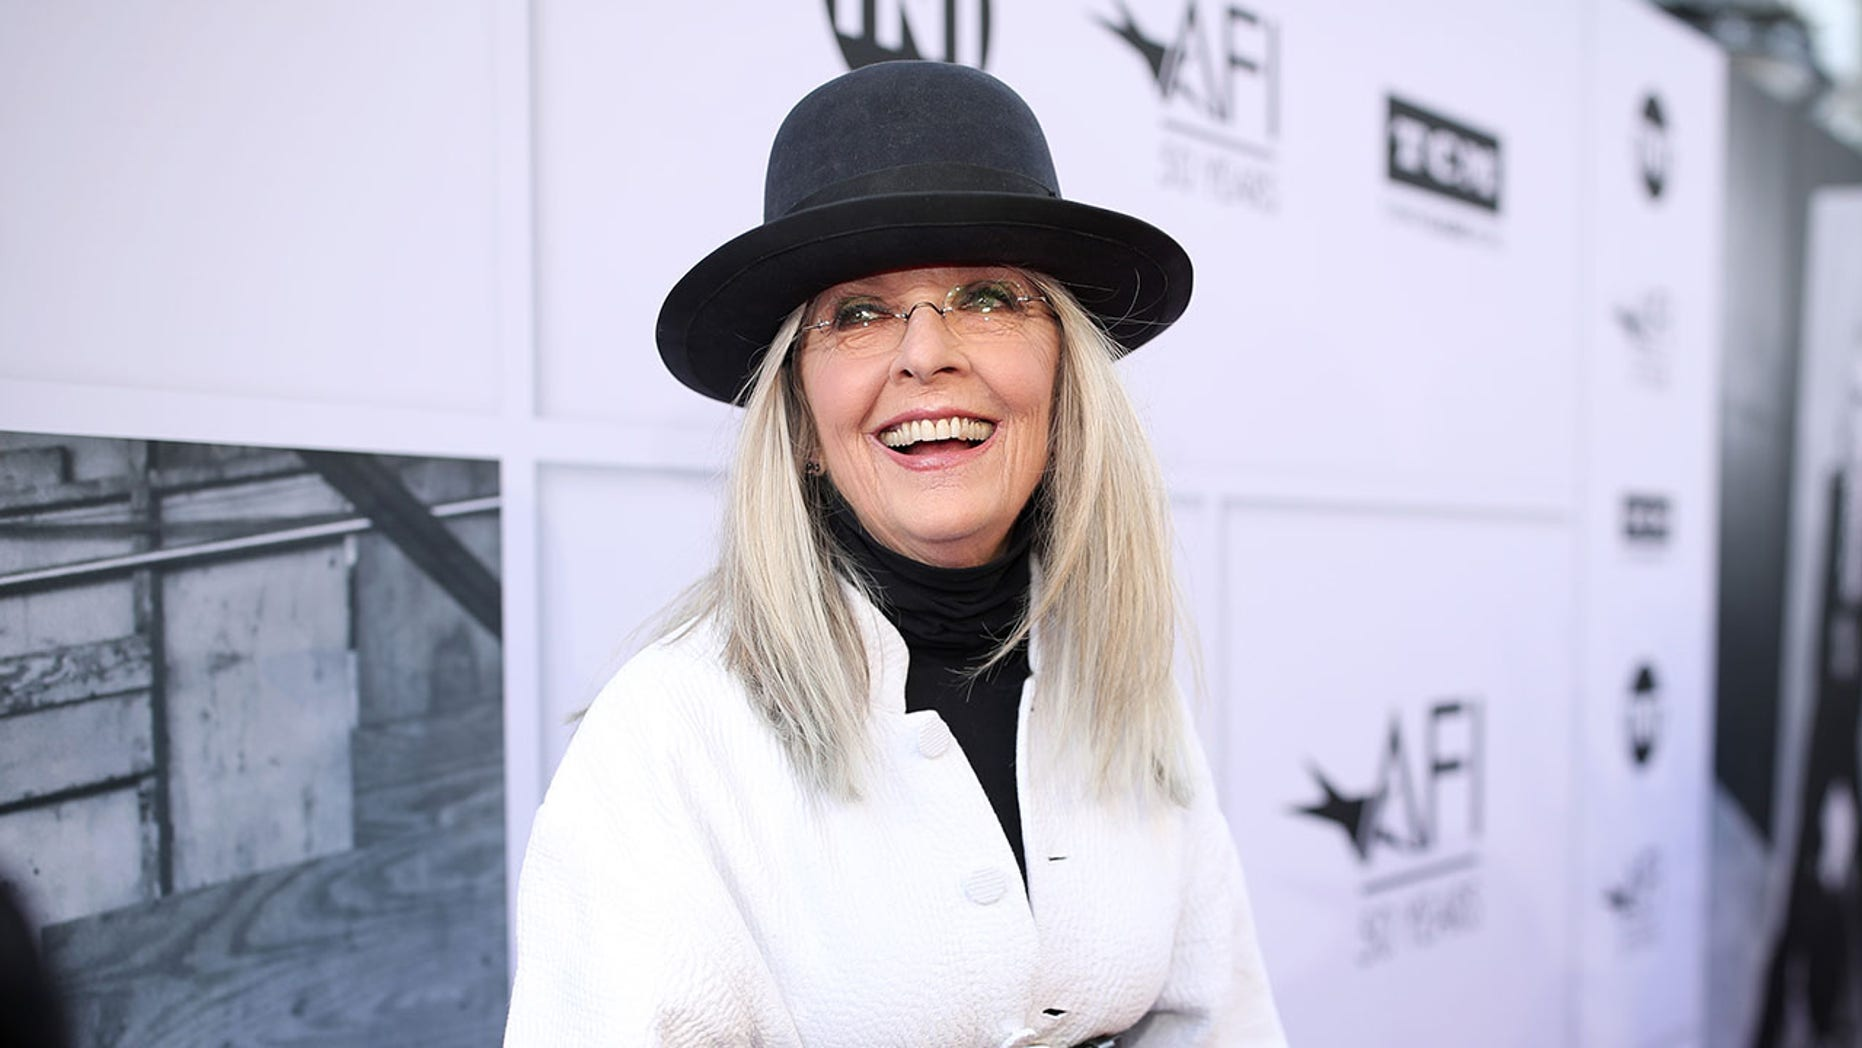 Westlake Legal Group GettyImages-693921940 Diane Keaton reveals she hasn't dated in 35 years: 'no dates' fox-news/entertainment fox news fnc/entertainment fnc Brie Stimson article 4cb58546-e3ec-52d4-937a-7f36606b0cc3